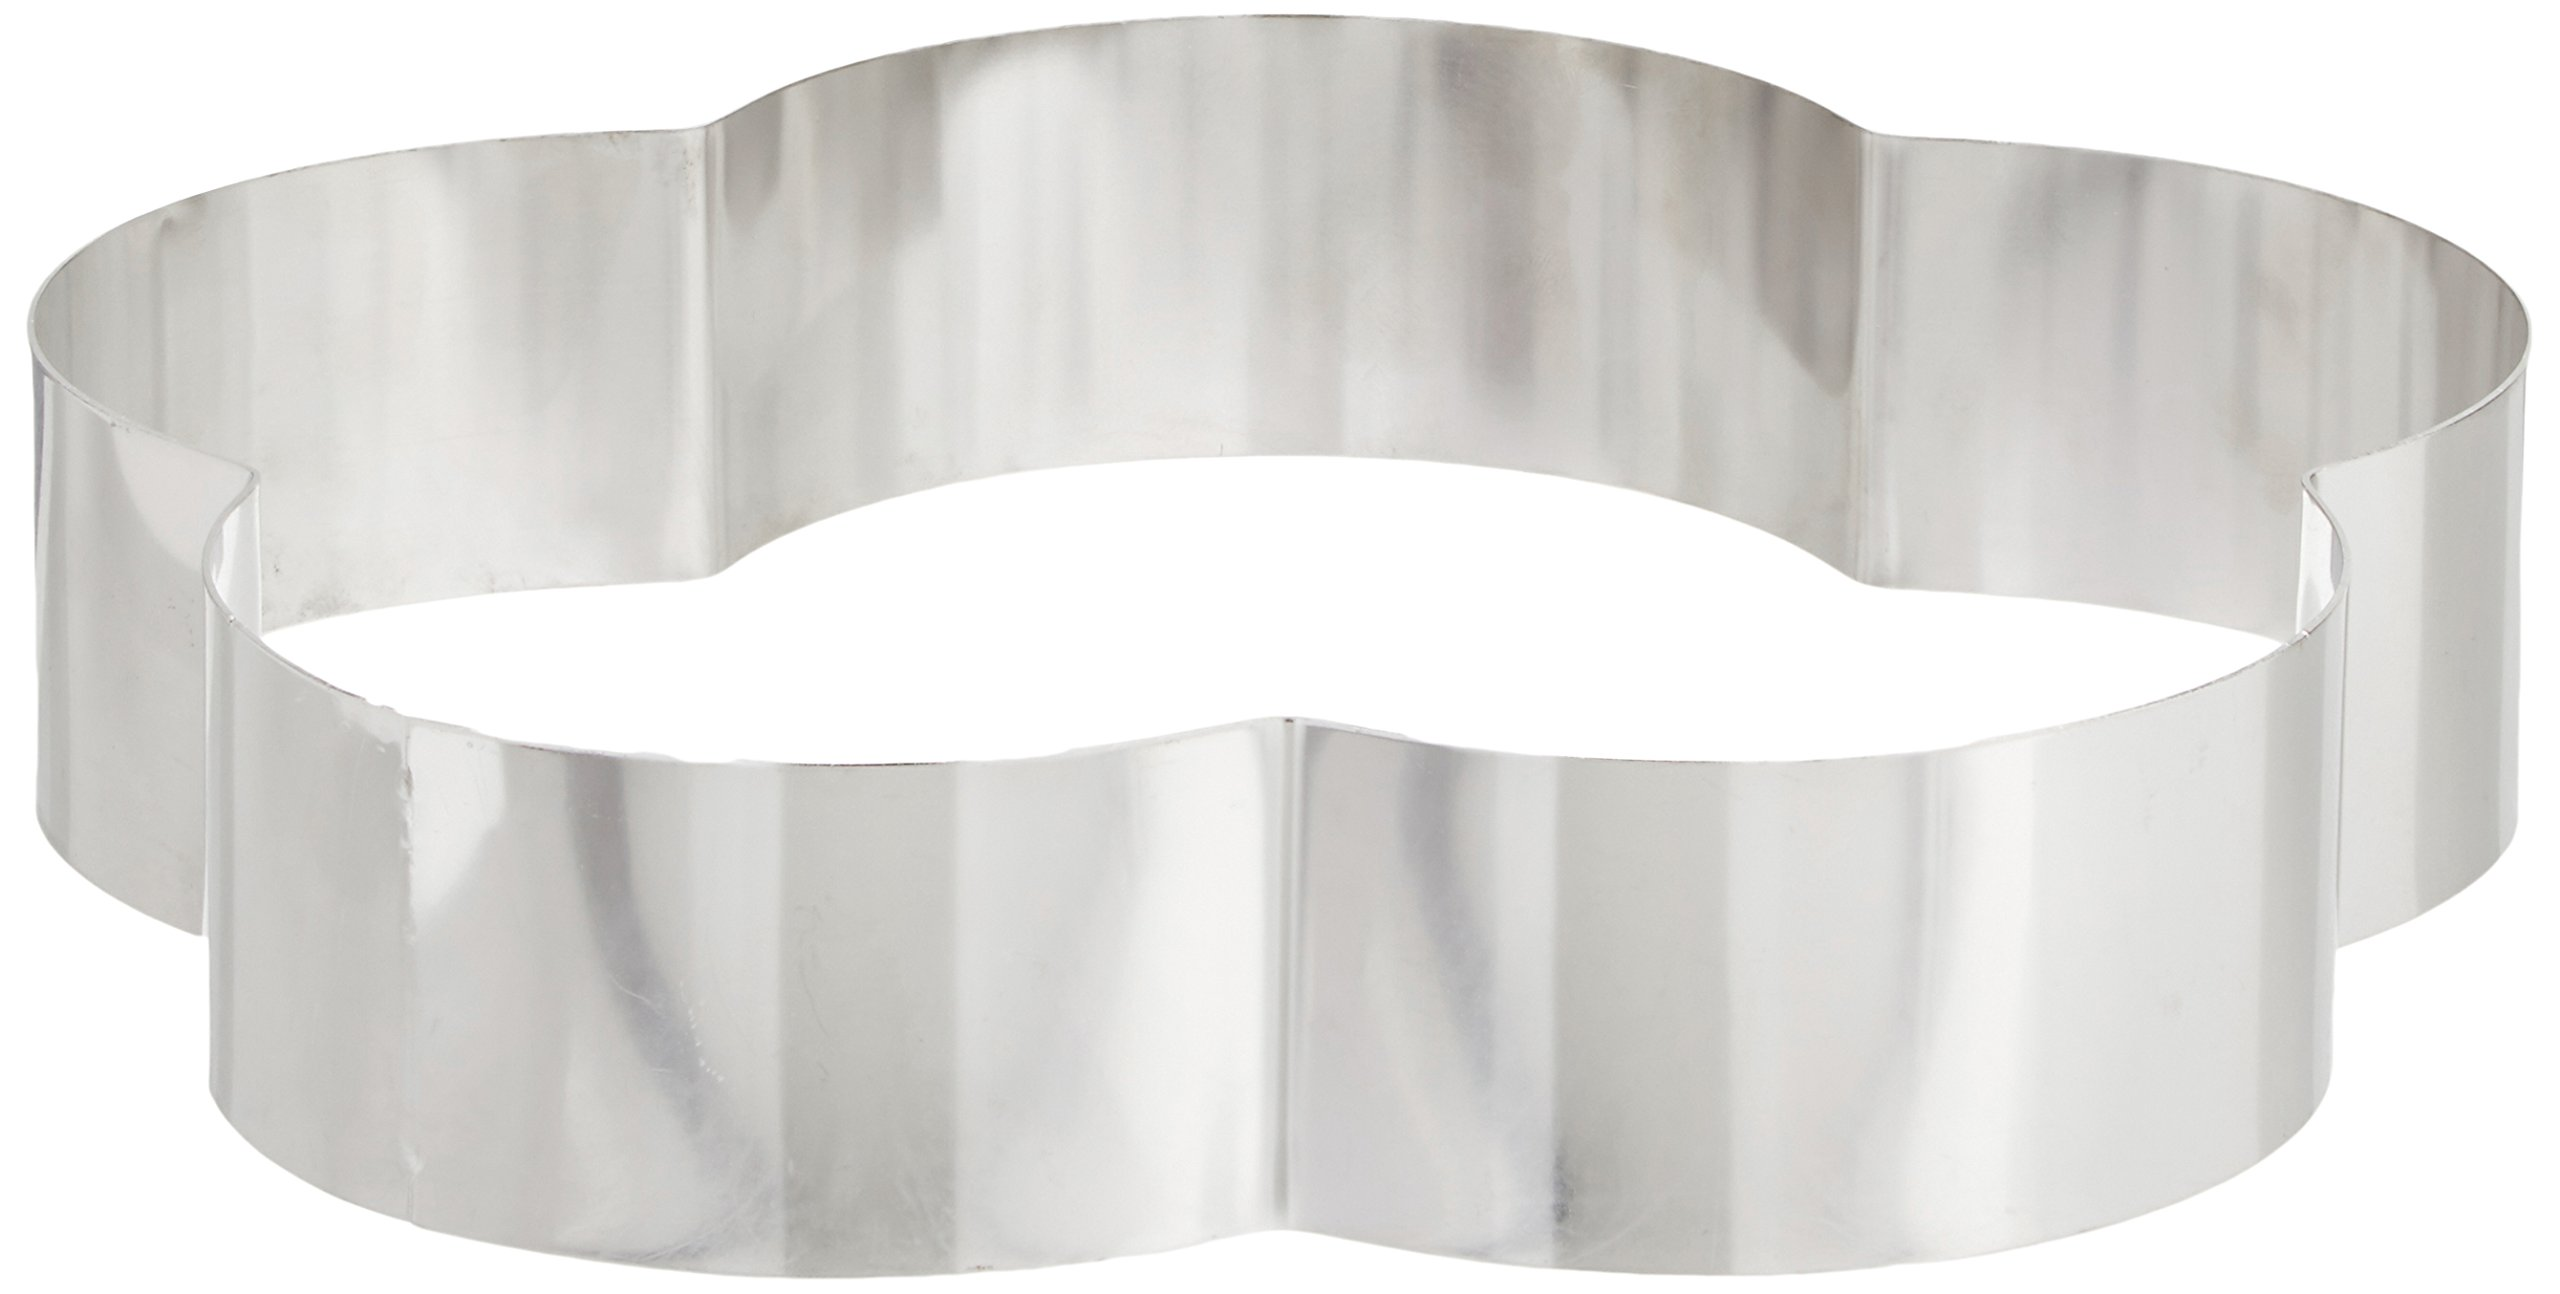 Fat Daddio's Stainless Steel Petal Cake and Pastry Ring, 10 Inch x 2 Inch